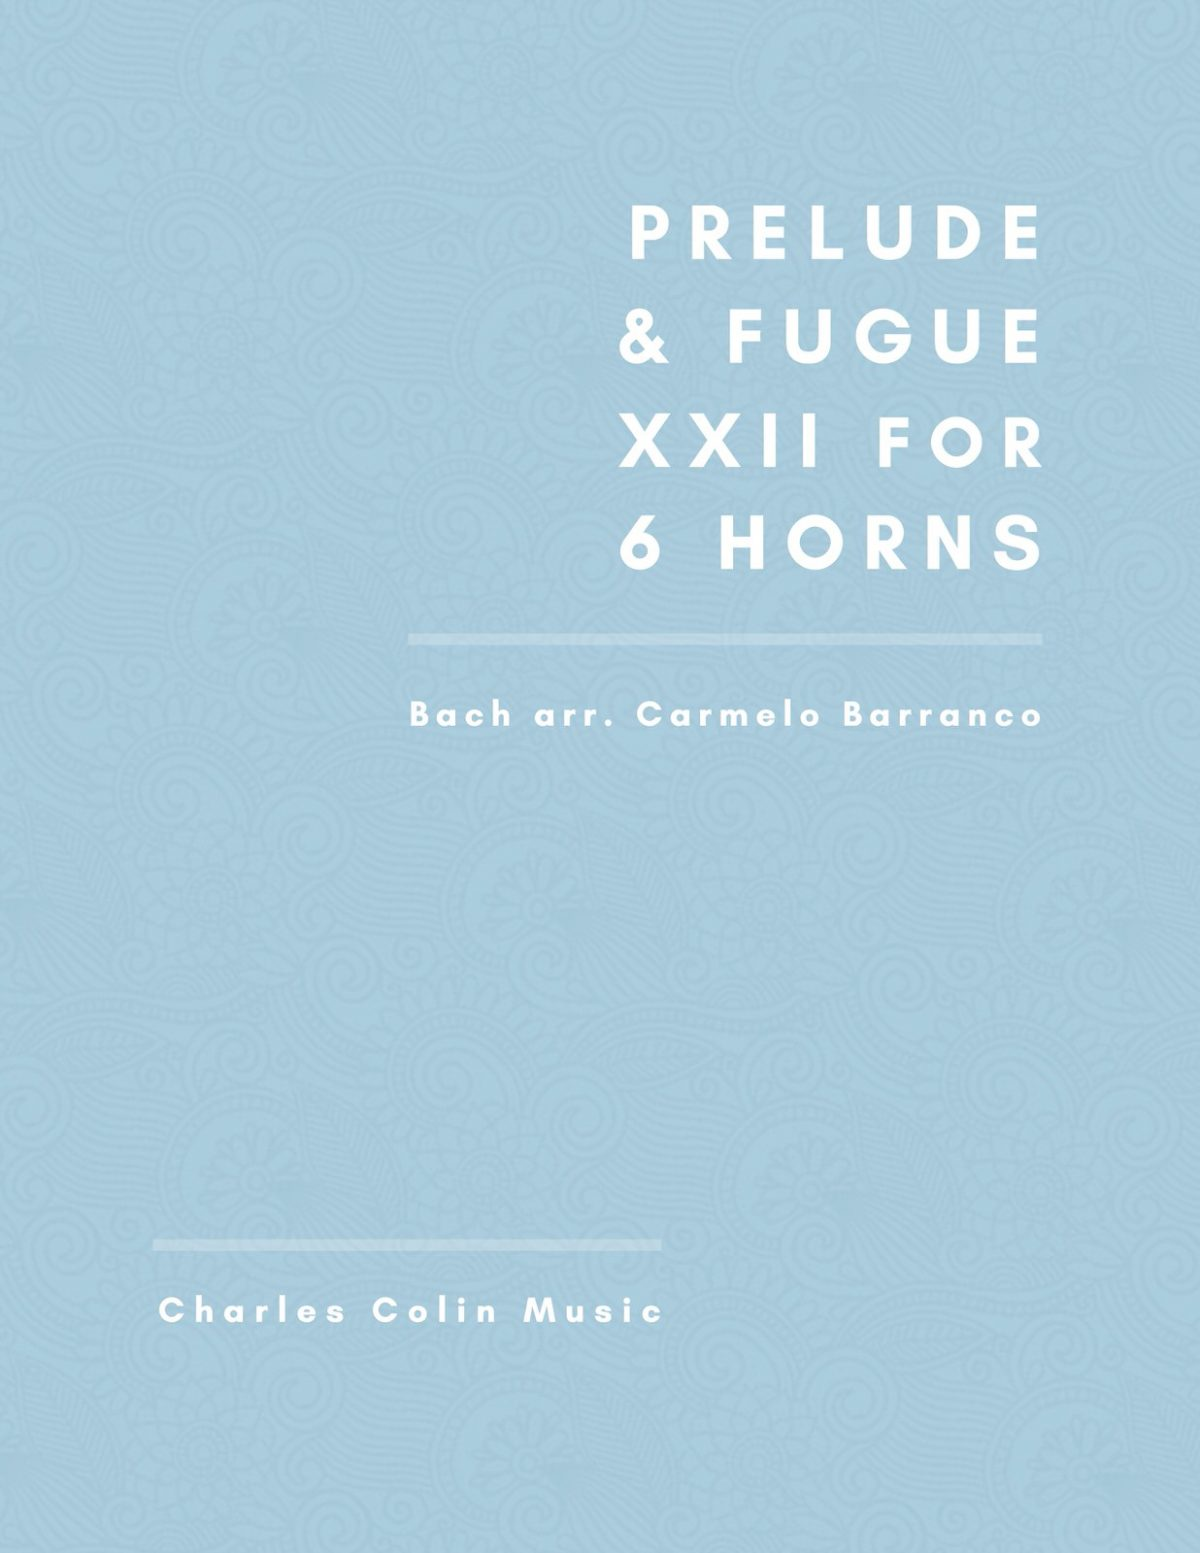 Barranco-Bach, Prelude & Fuge XXII for 6 Horns-p01